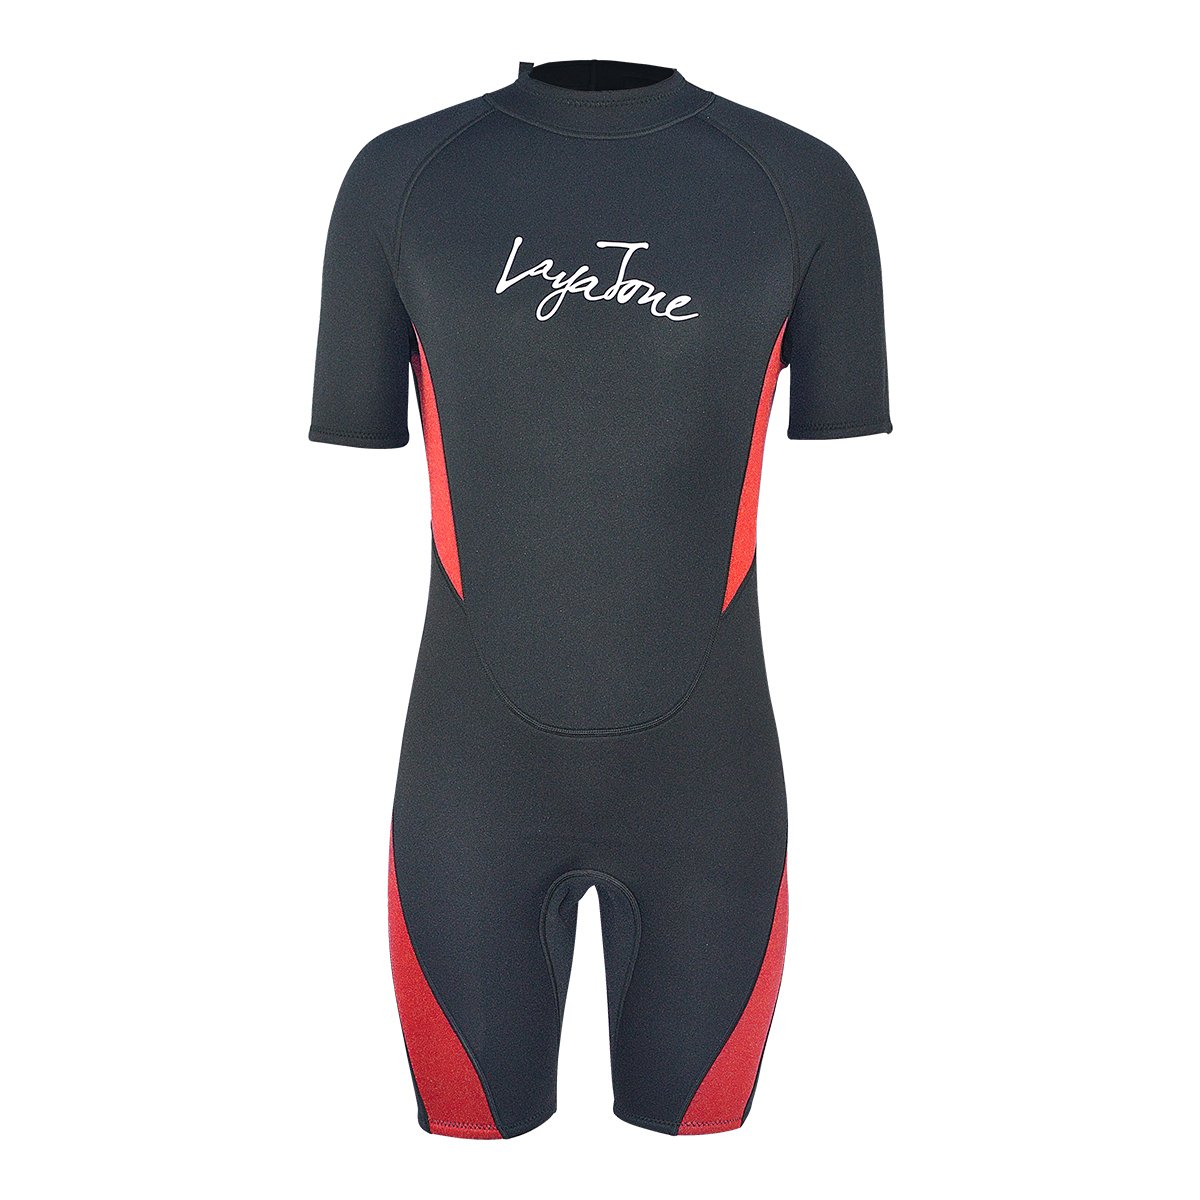 Layatone 3mm Shorty Wetsuit Adults Scuba Diving Suit Men Women Neoprene Wetsuits Thermal One Piece Swimsuit Surf Suit Shorty Suits (Red,4XL) by Layatone